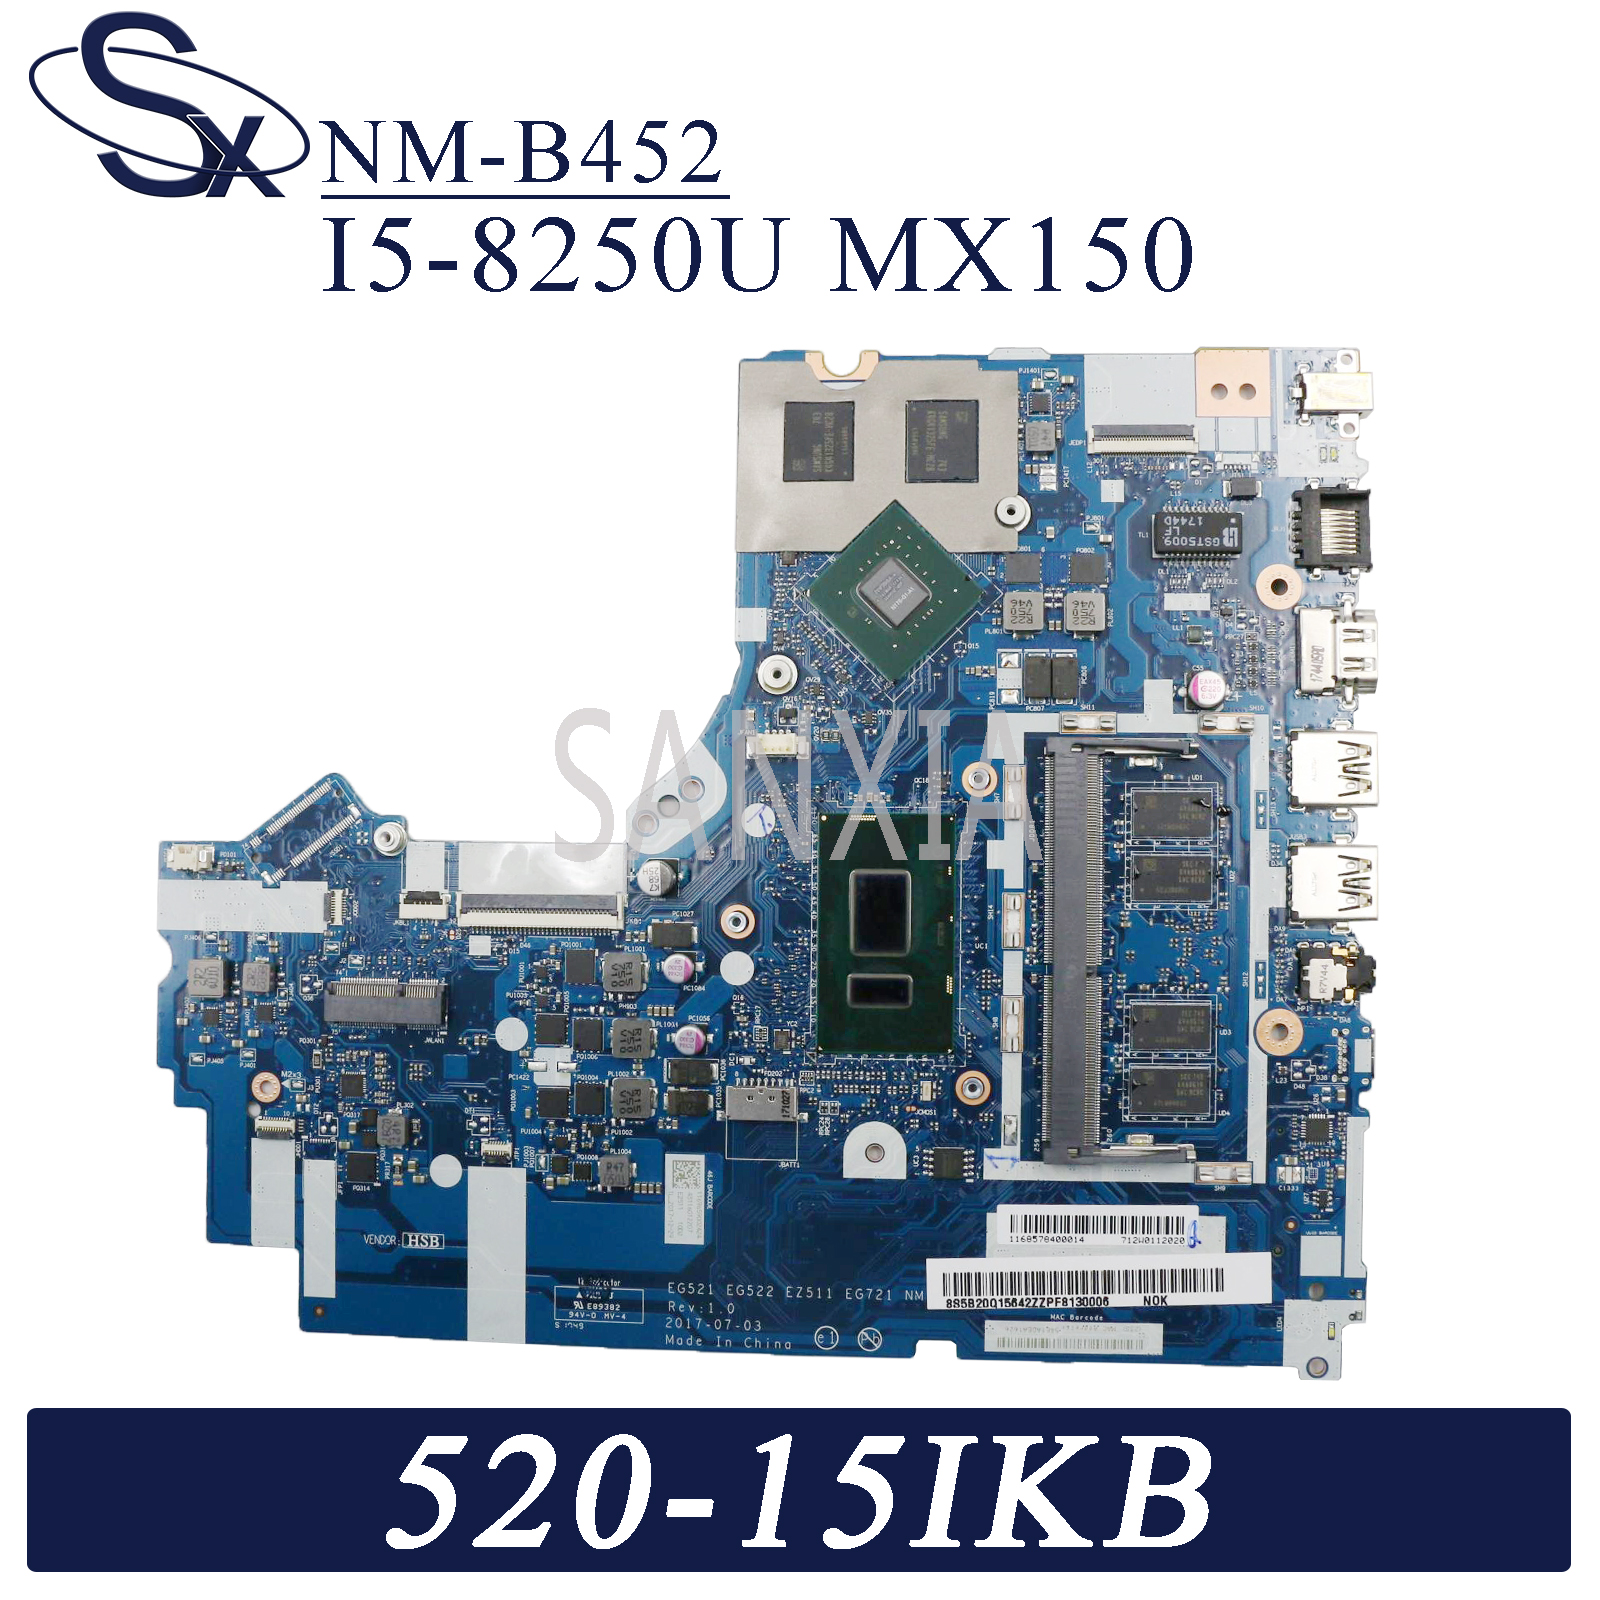 KEFU NM-B452 <font><b>Laptop</b></font> motherboard for Lenovo Ideapad 520-15IKB original mainboard 4GB-RAM I5-8250U <font><b>MX150</b></font> image